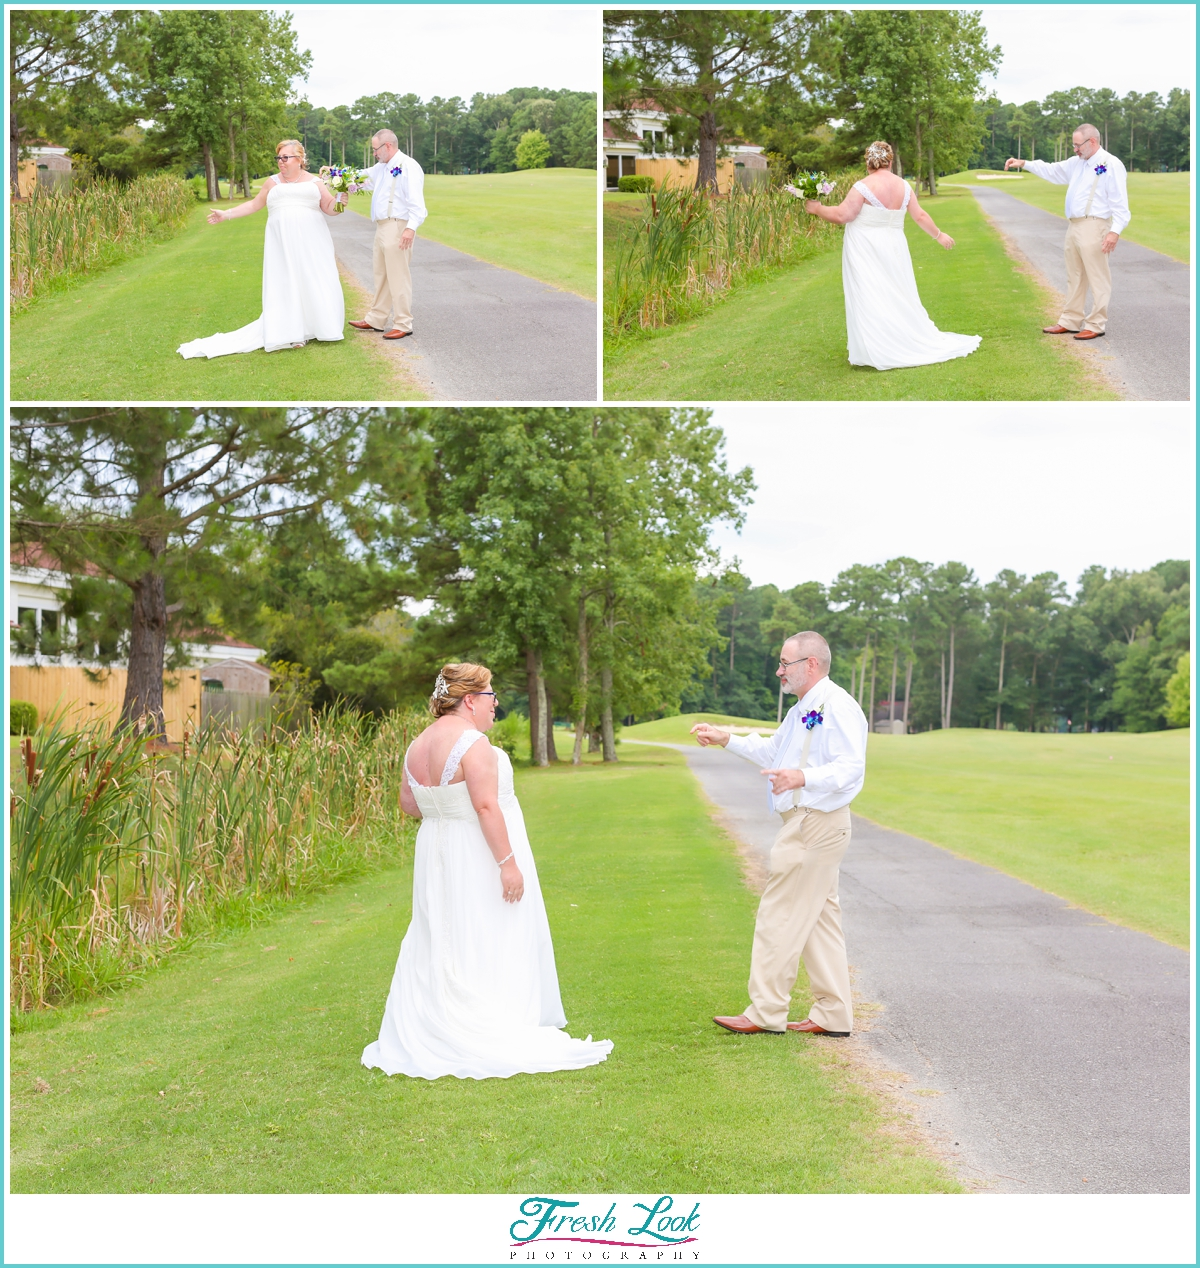 first look photos with bride and groom